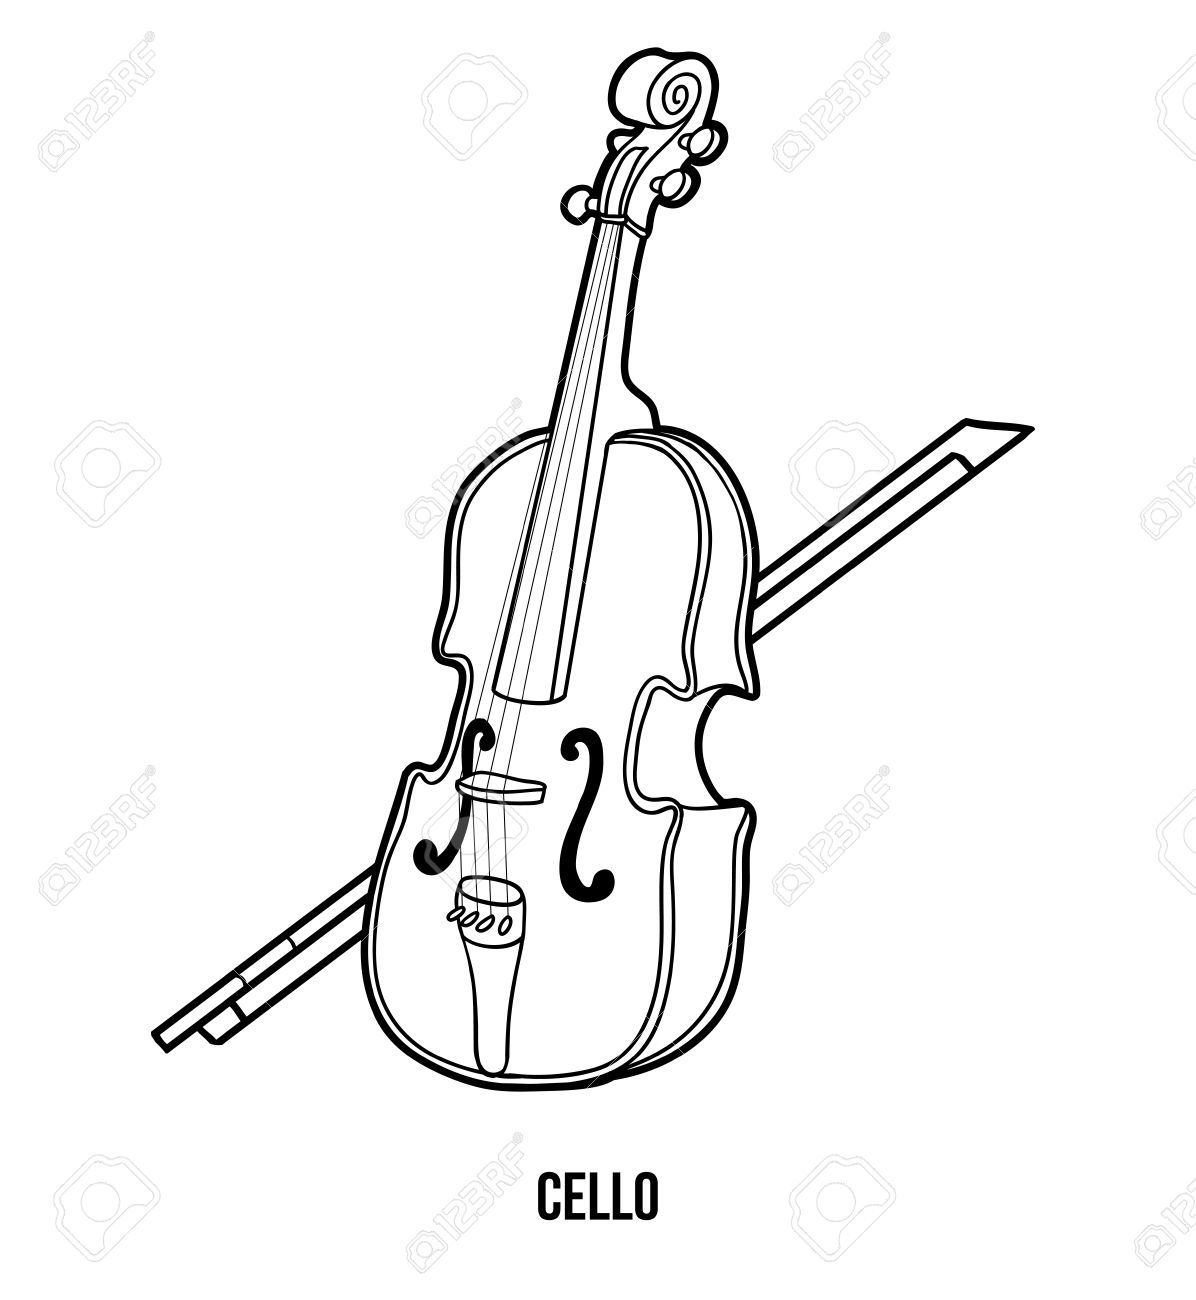 Coloring instruments - Coloring Book For Children Education Game Musical Instruments Cello Stock Vector